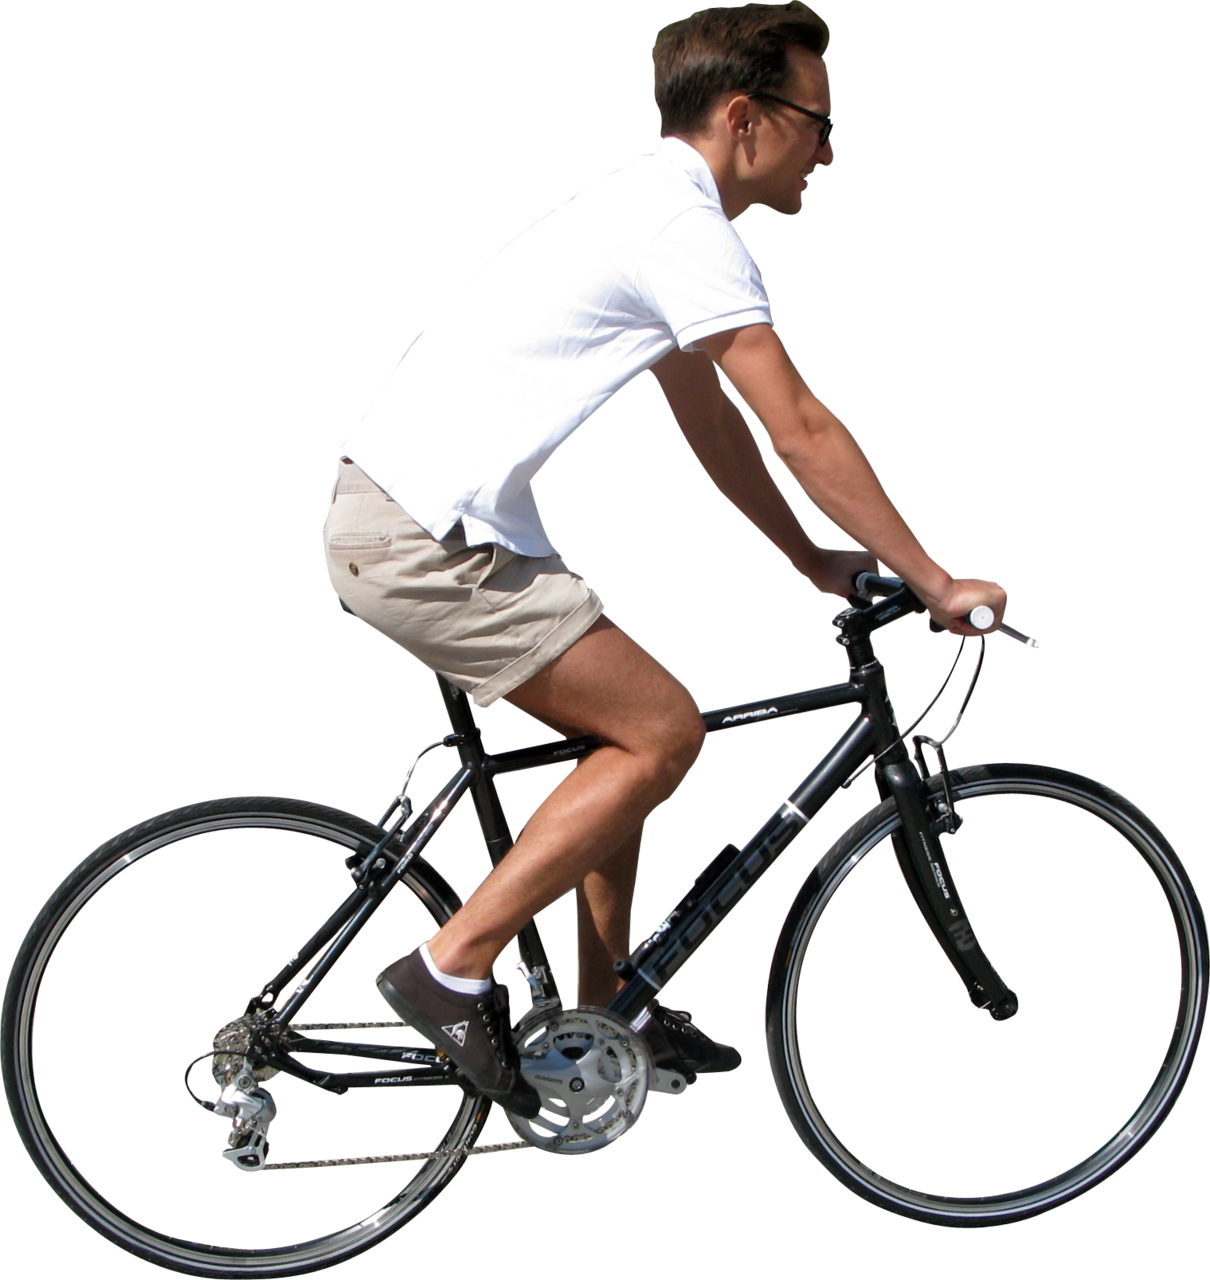 Riding bicycle png. Cycling transparent images all